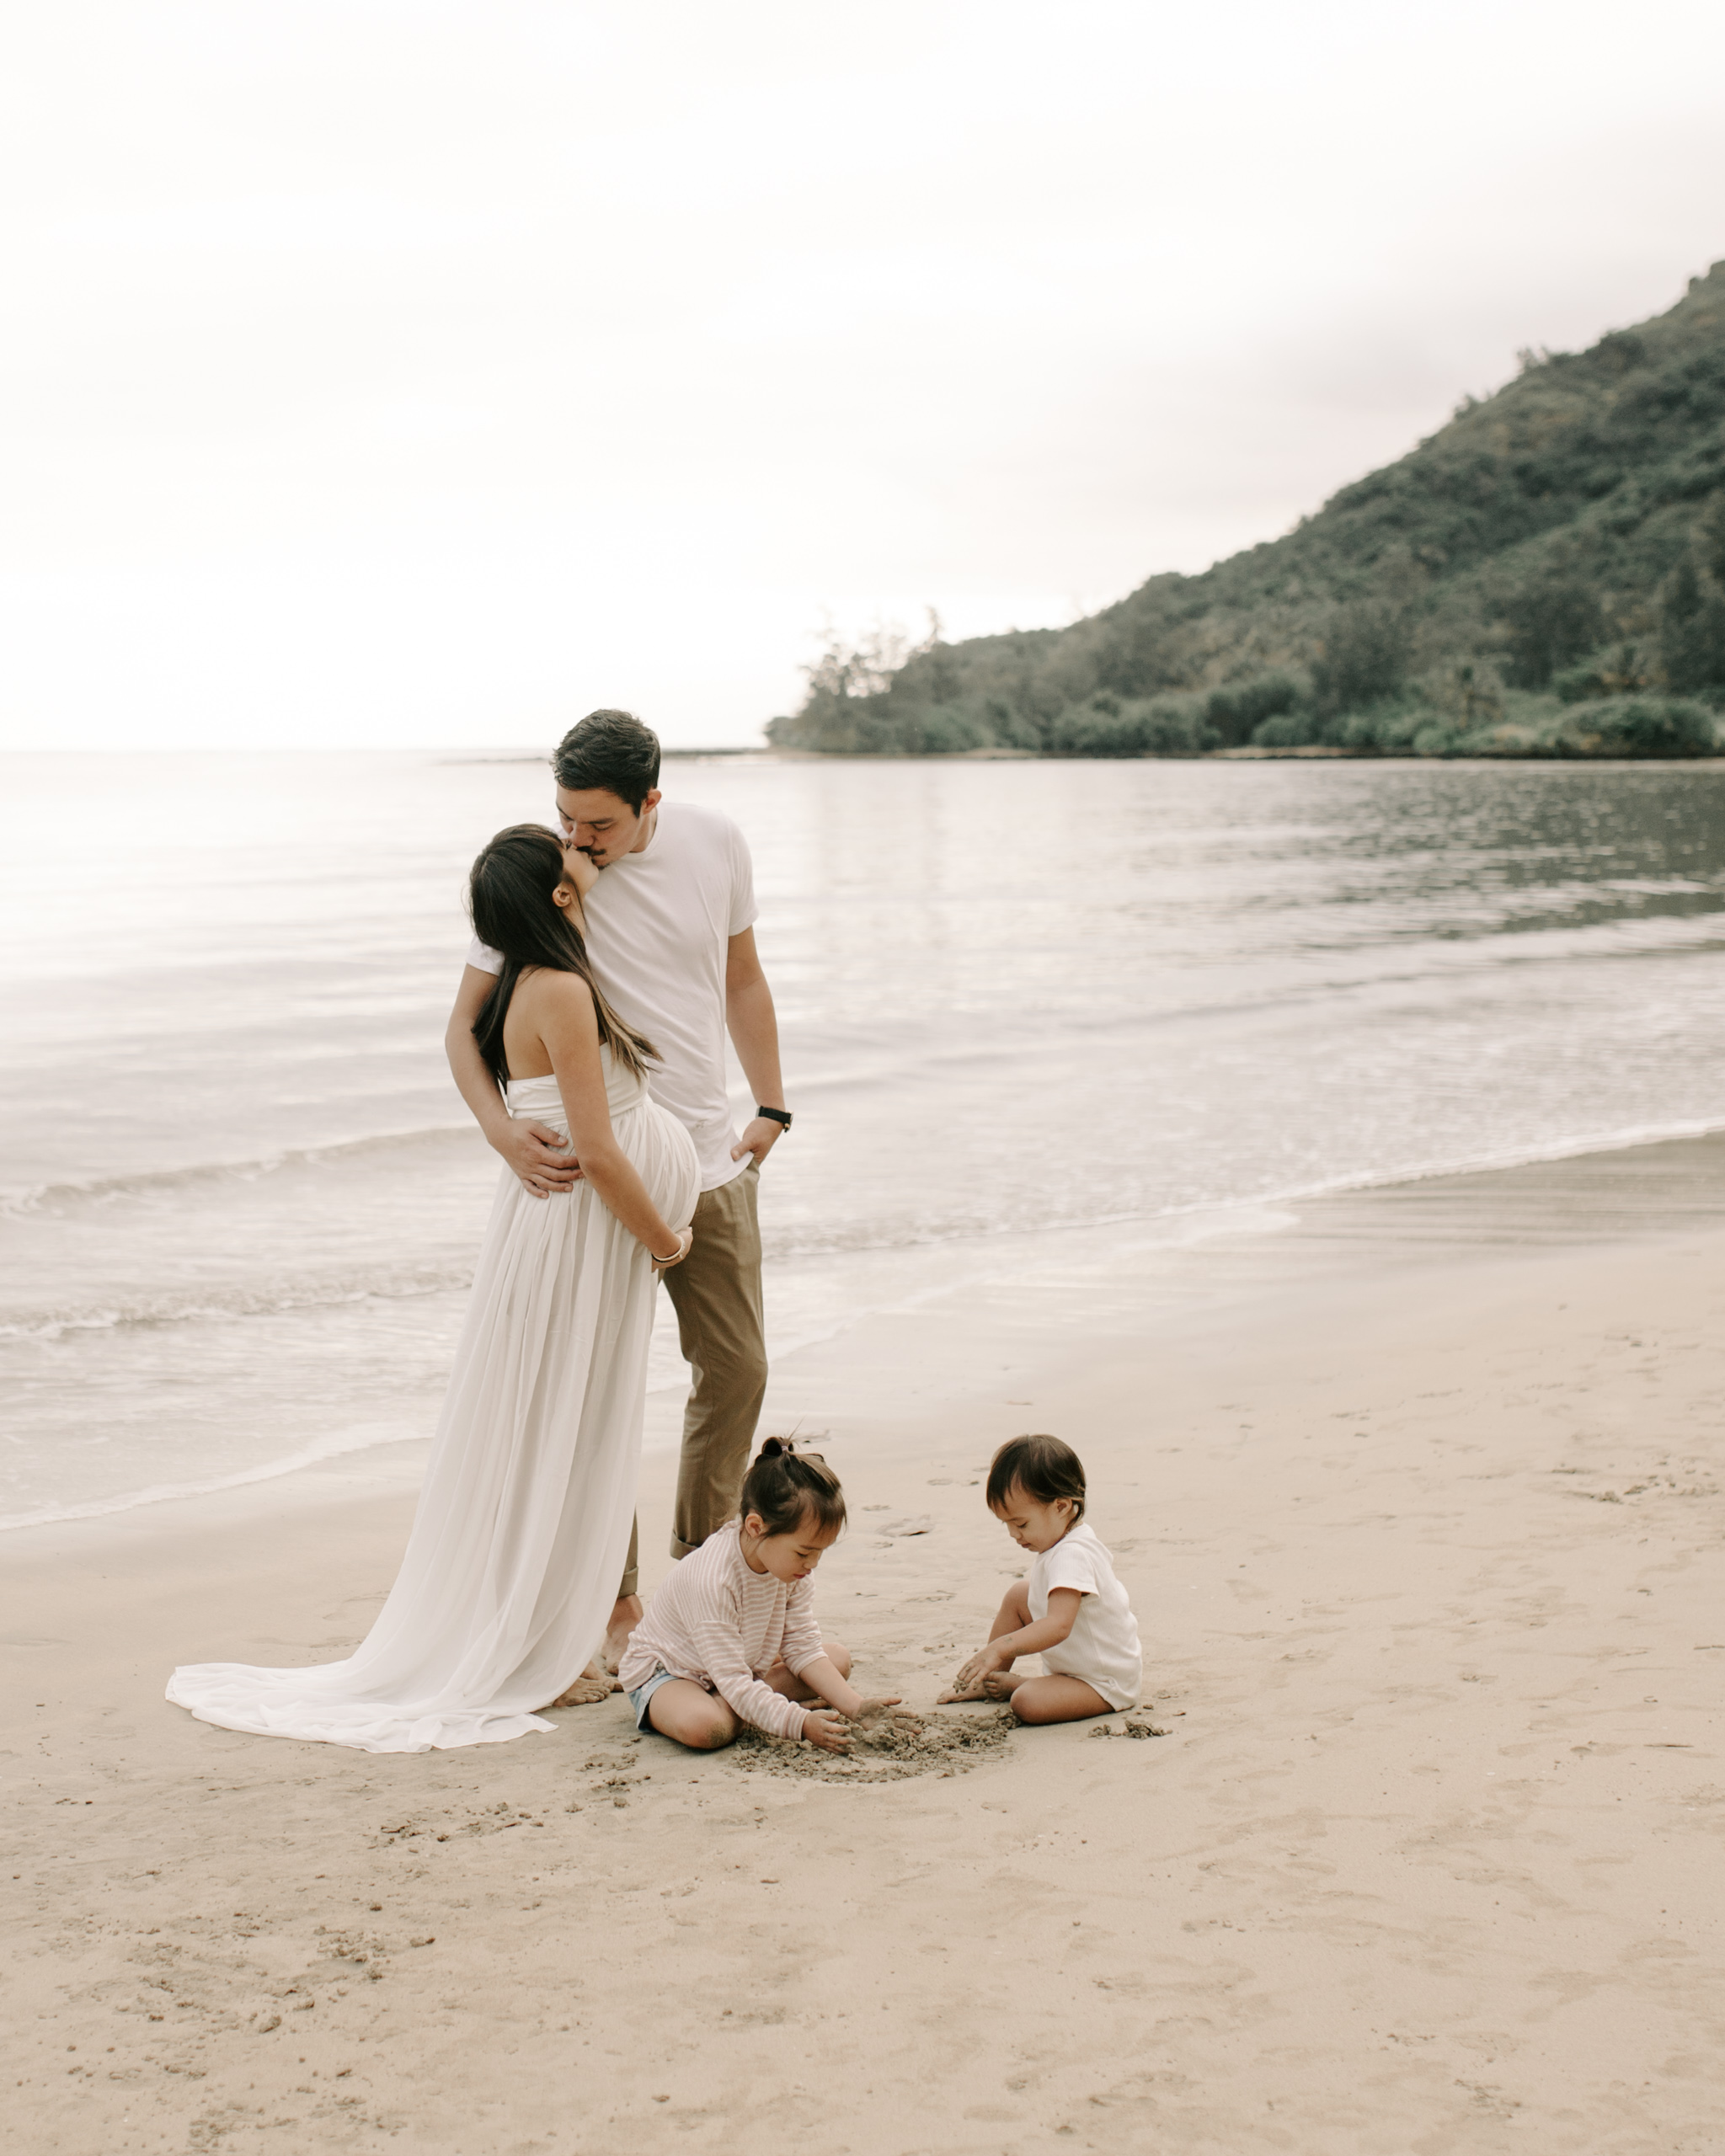 Candid family beach pictures by Hawaii Family Photographer Desiree Leilani